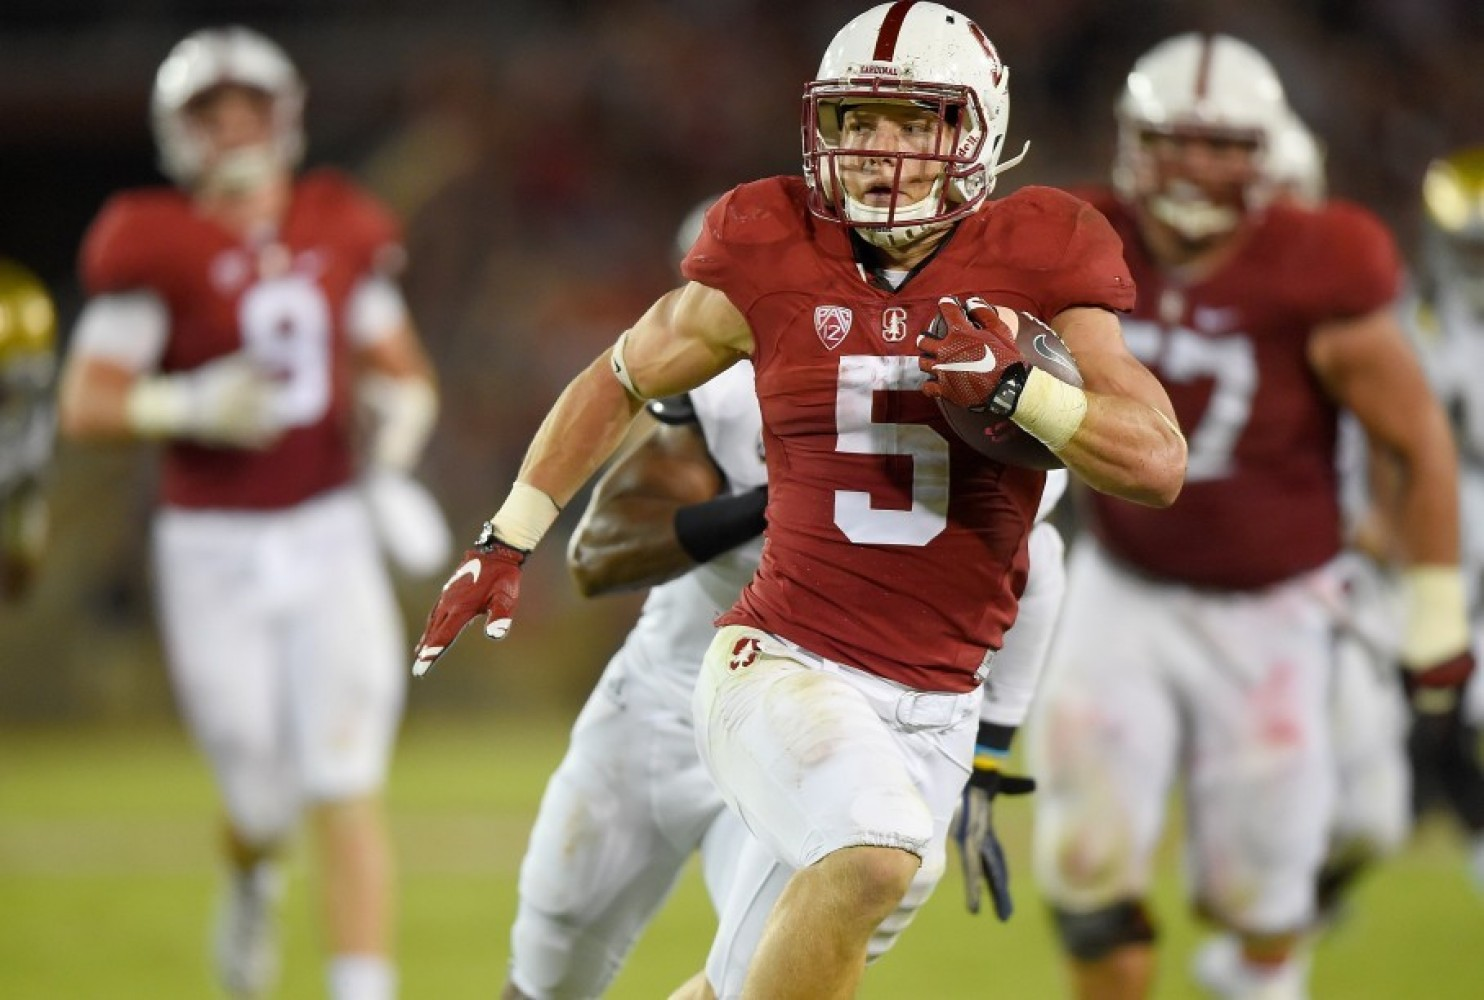 Stanford RB Christian McCaffrey is a Heisman contender. (Photo: Thearon W. Henderson/Getty Images)